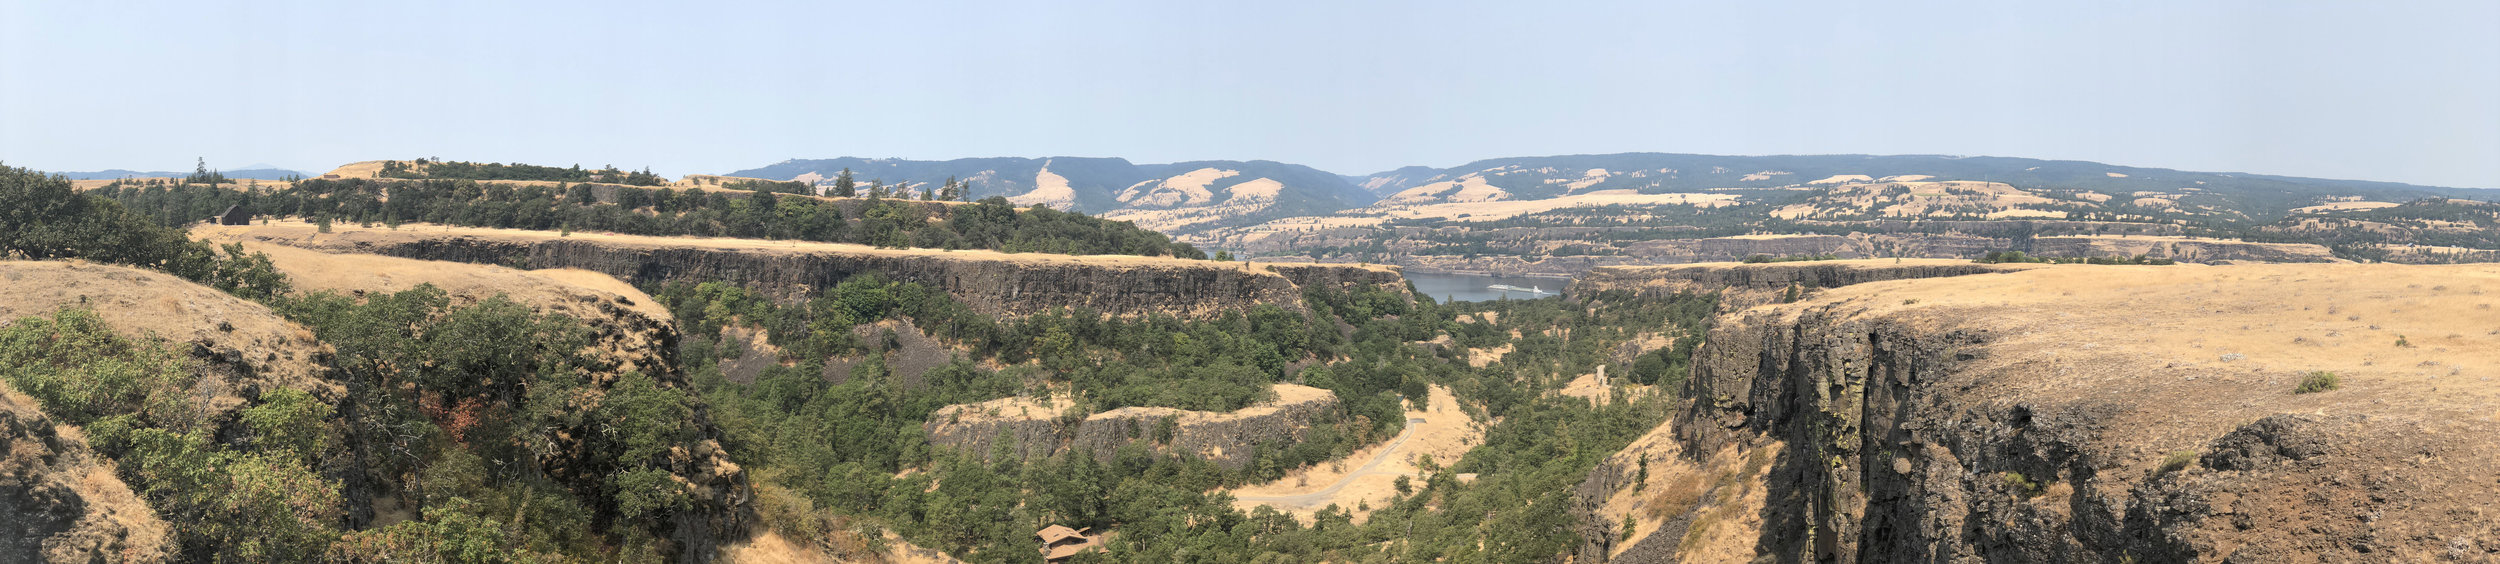 At the end of the ride, we stopped at the bridge and took a shot of the view across the canyon, and out to the river.